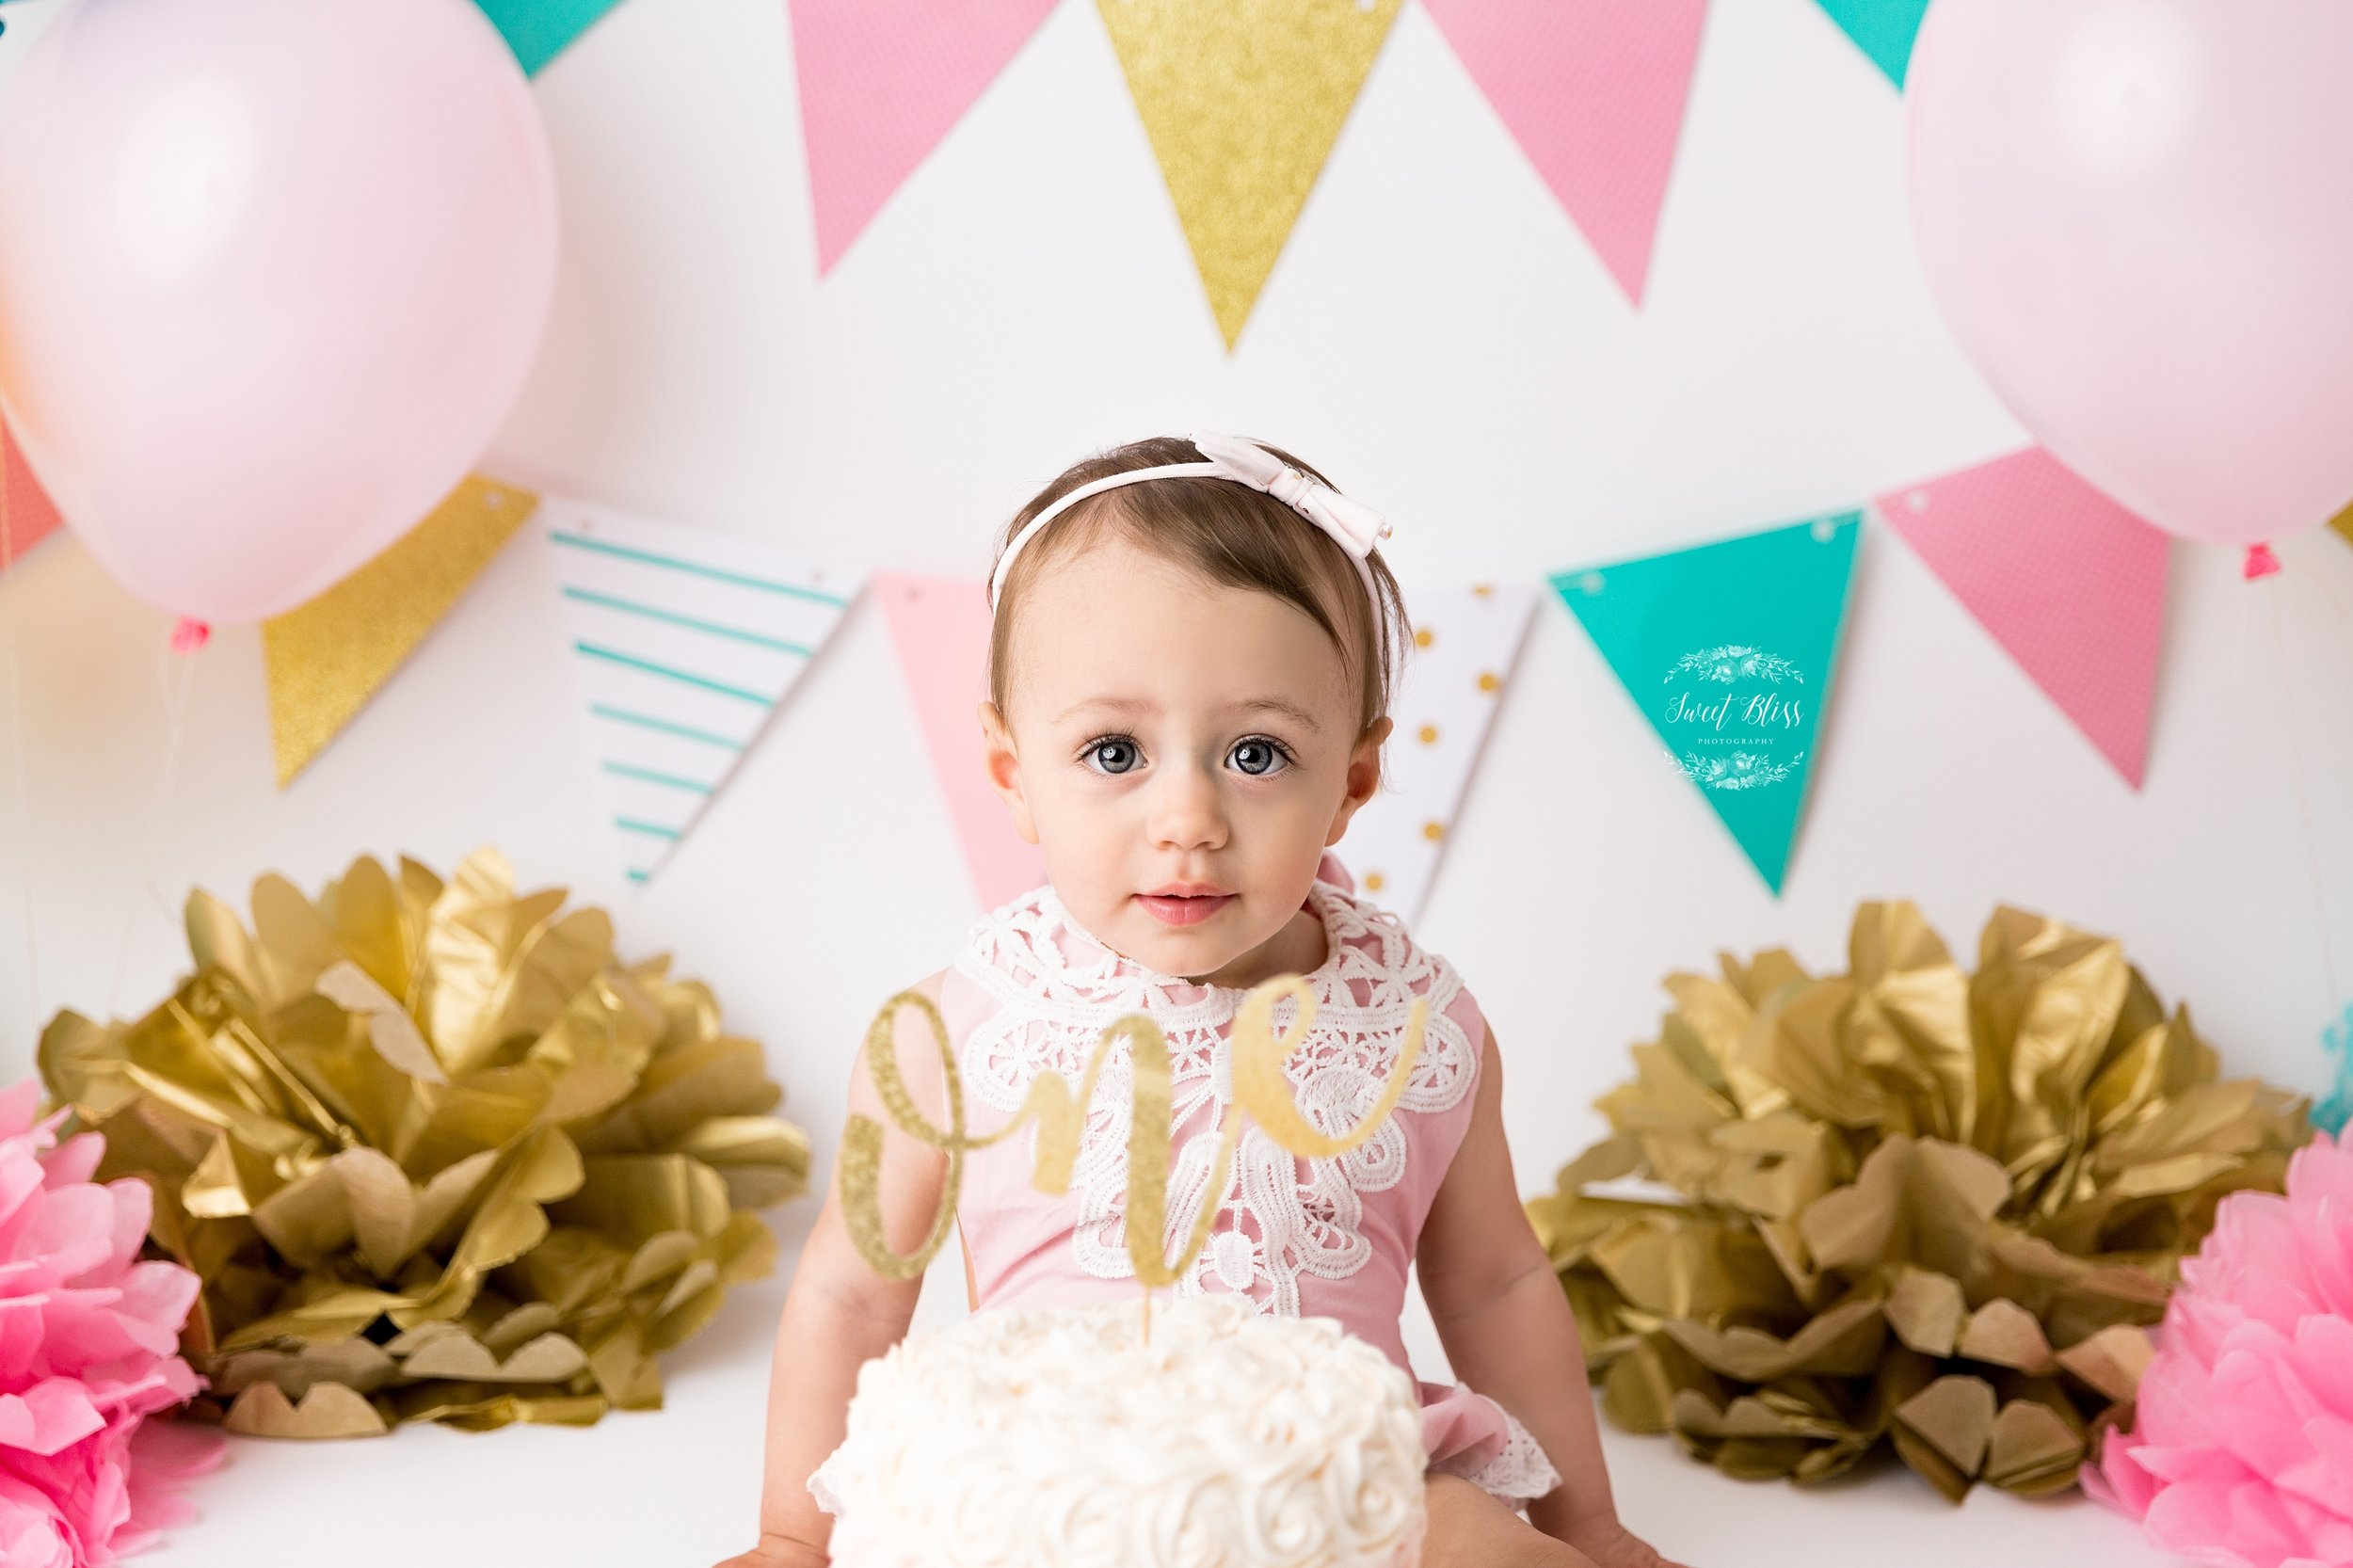 Cakesmash_SweetBlissphotography_marylandphotographer-22.jpg